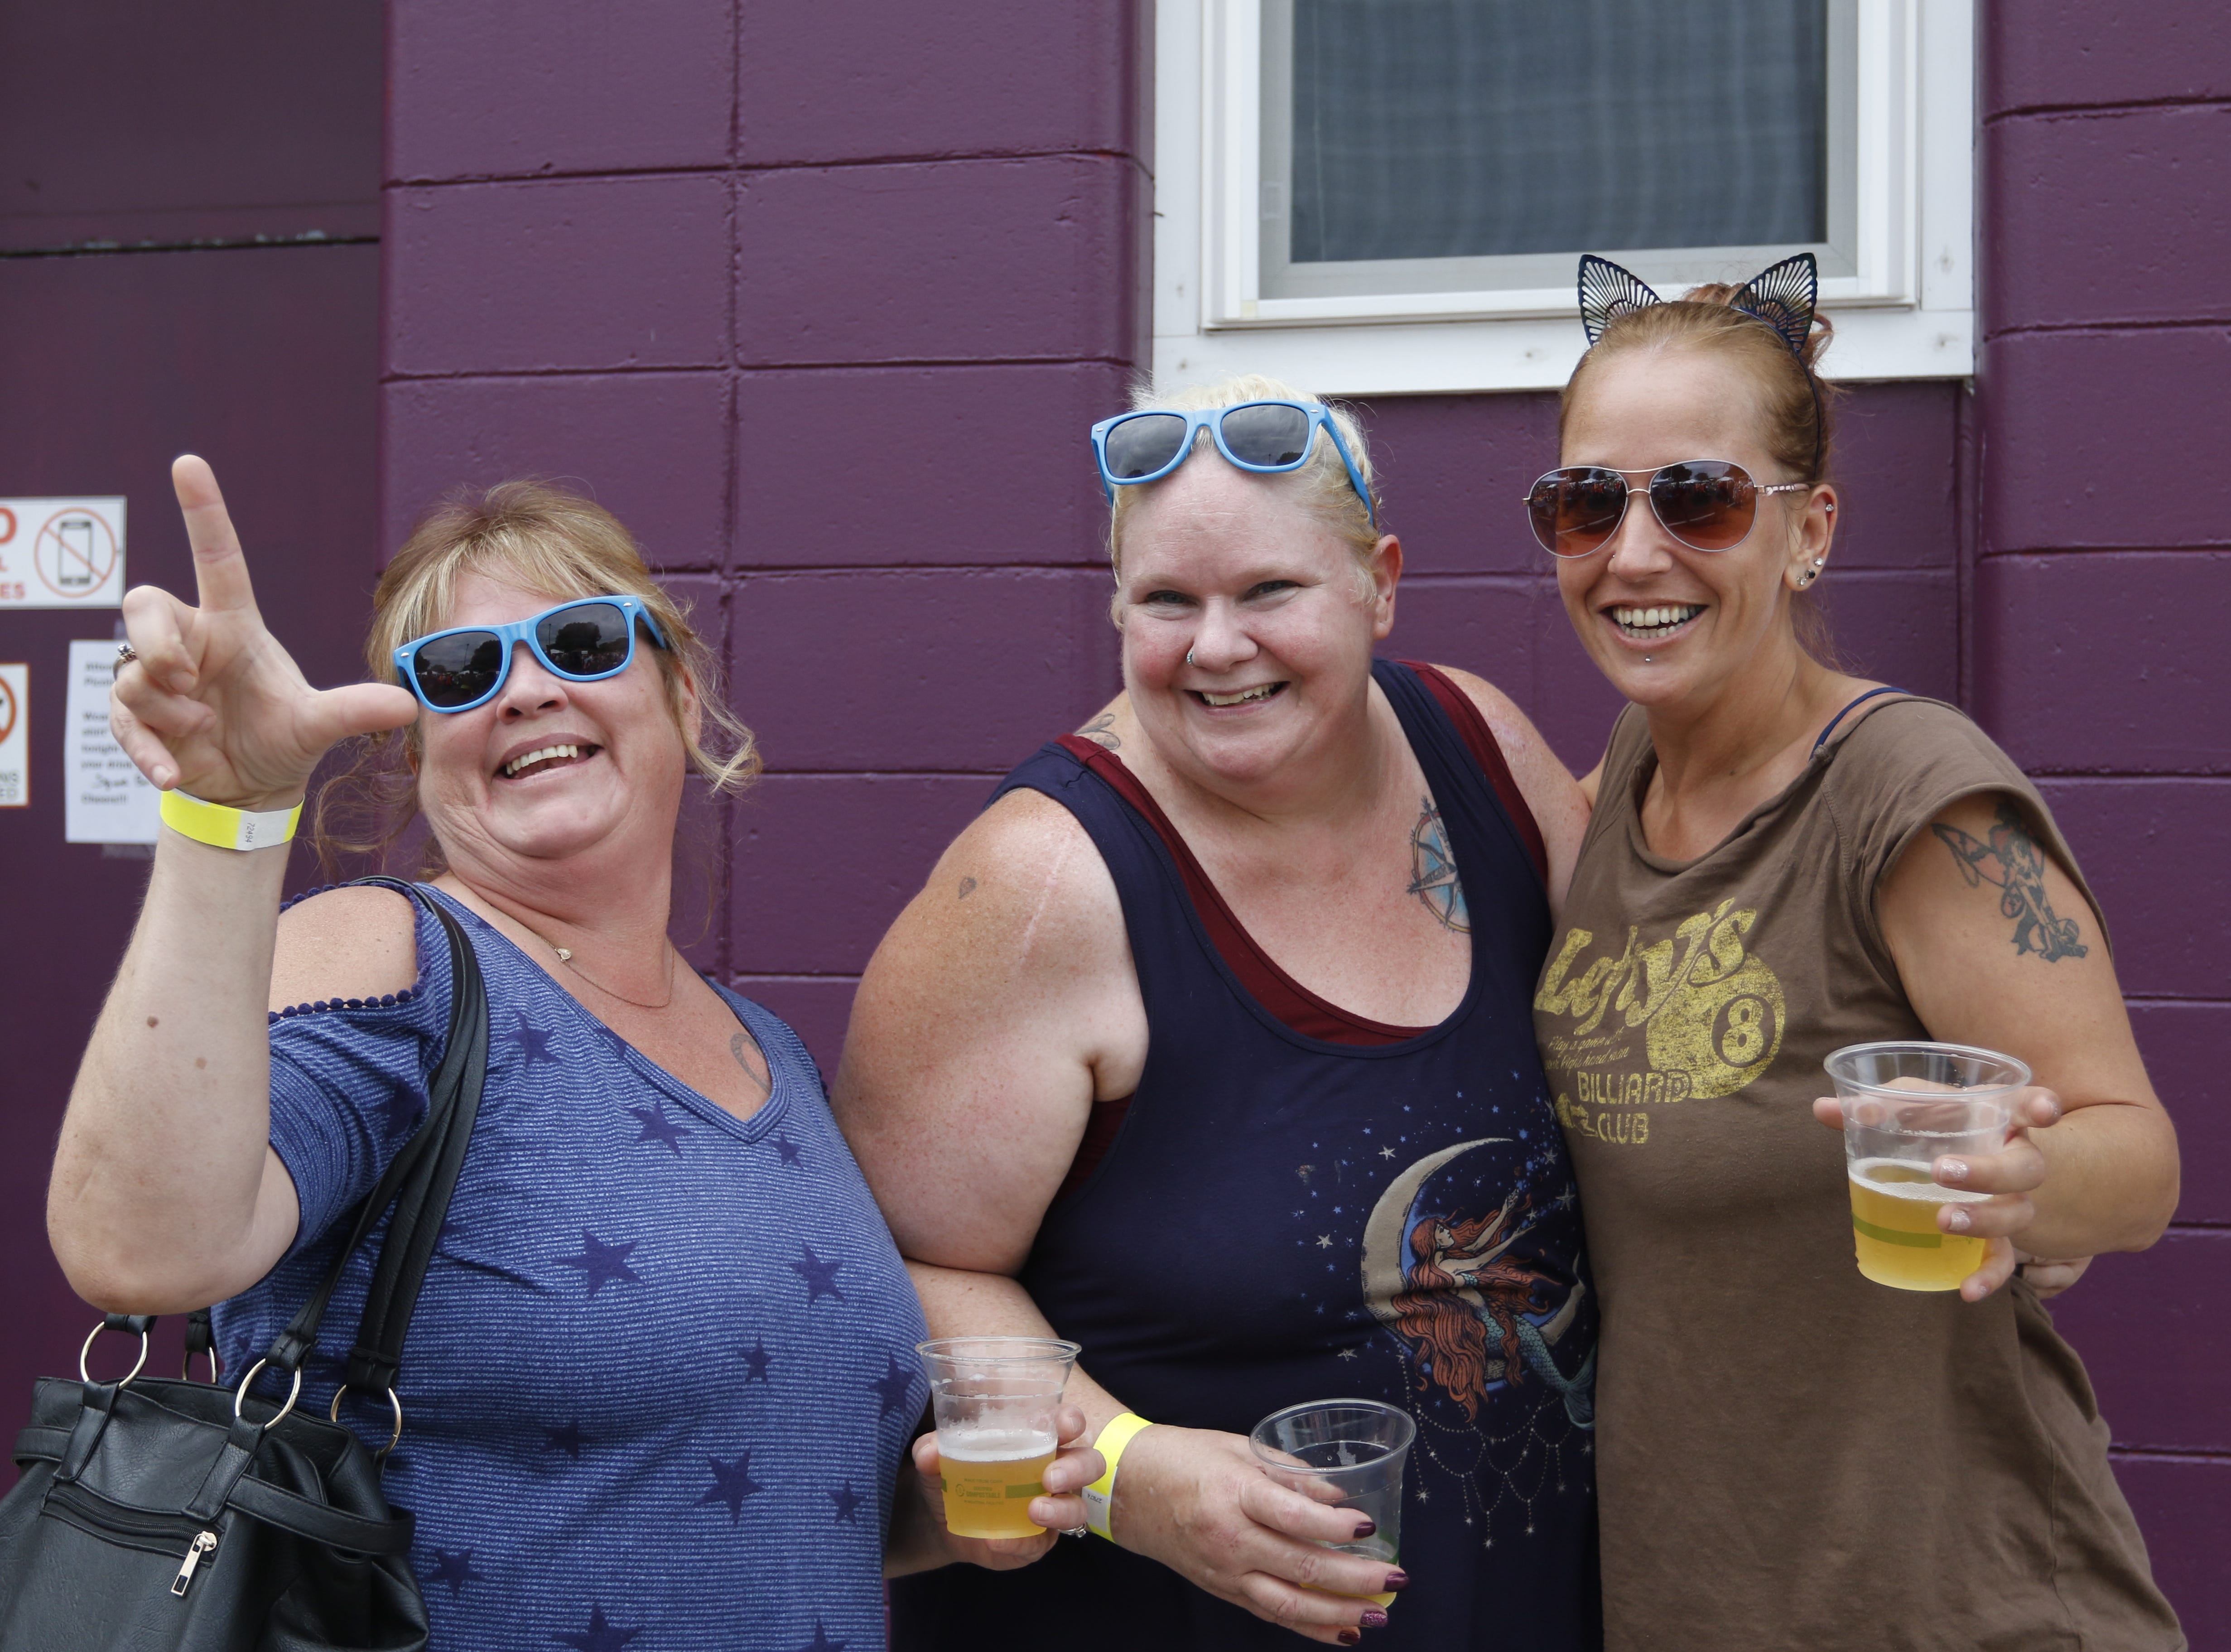 Doreen Putzkie, left, Becki Nightingale and Jen Longmore pose for a photo at the Wisconsin Rapids community picnic on First Avenue South and Johnson Street Wednesday, August 1, 2018.